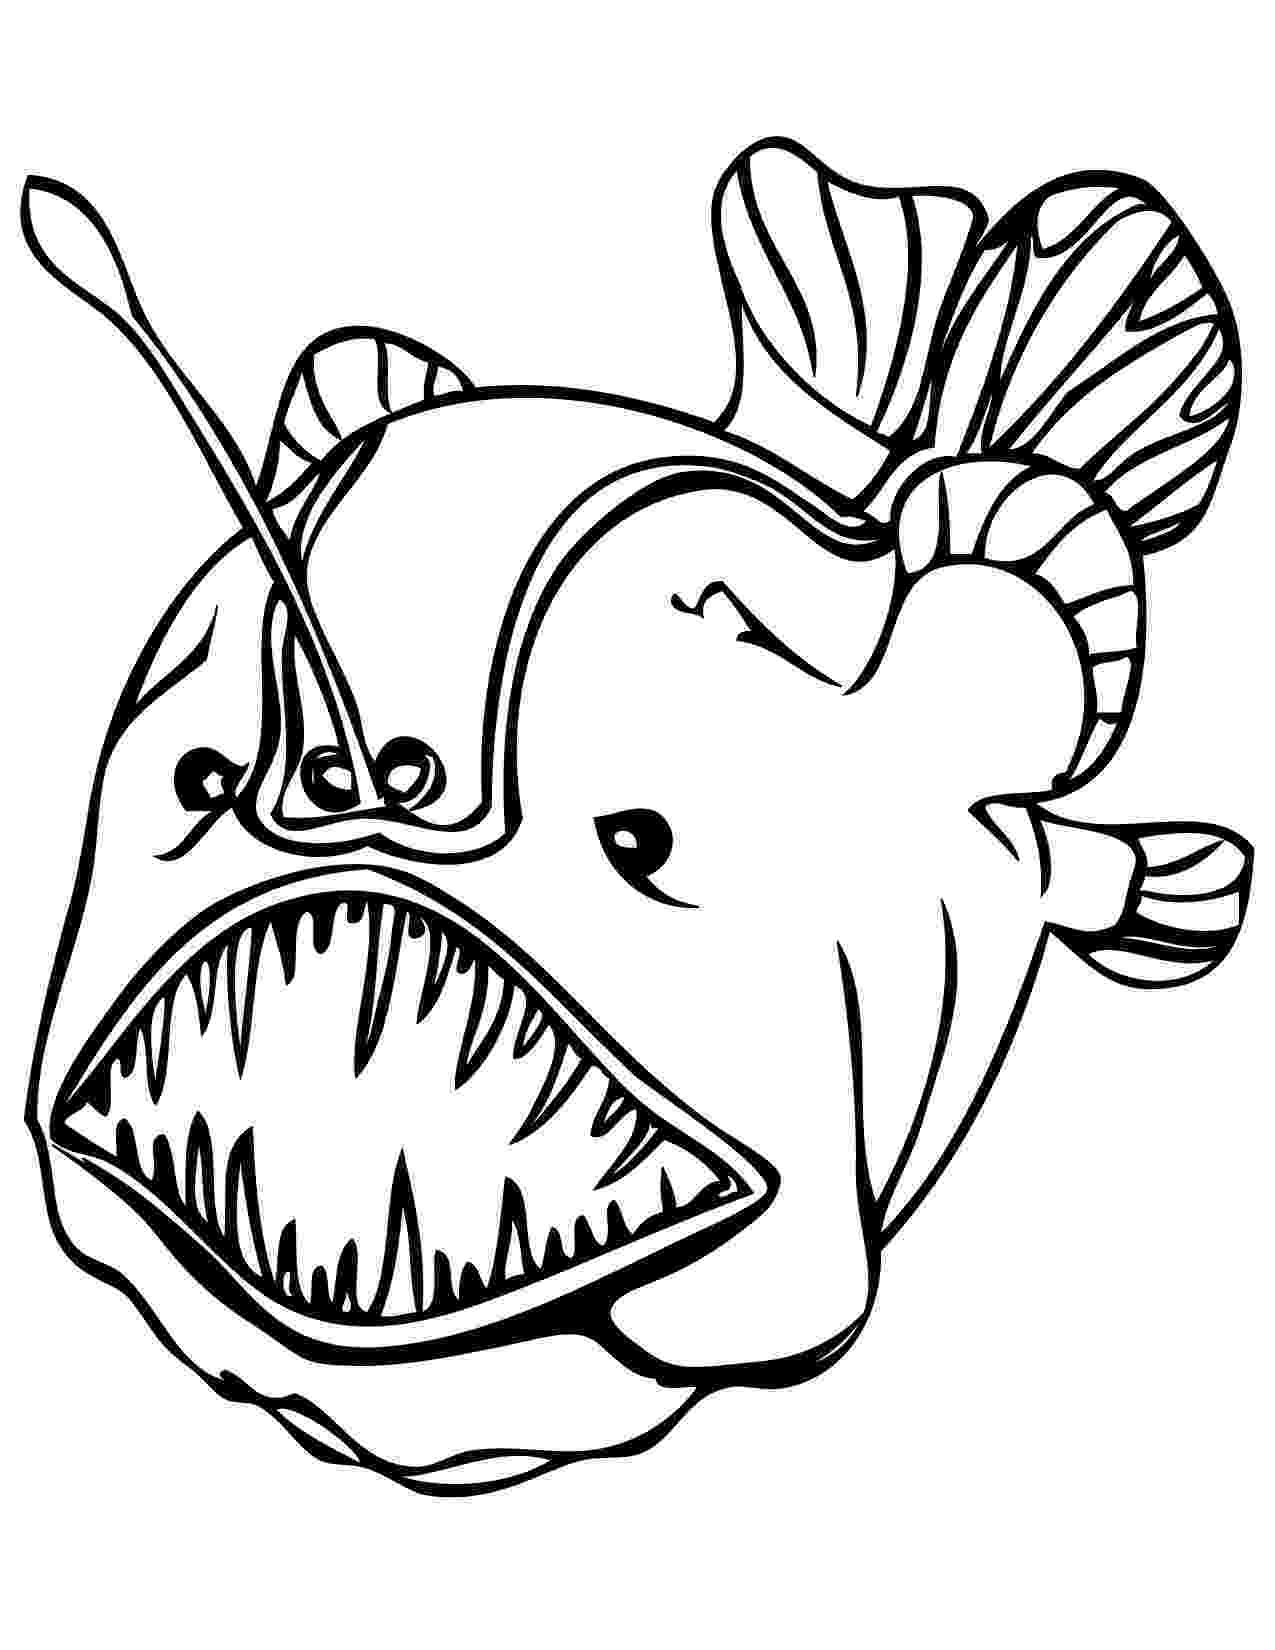 fish colouring book simple fish coloring pages download and print for free fish book colouring